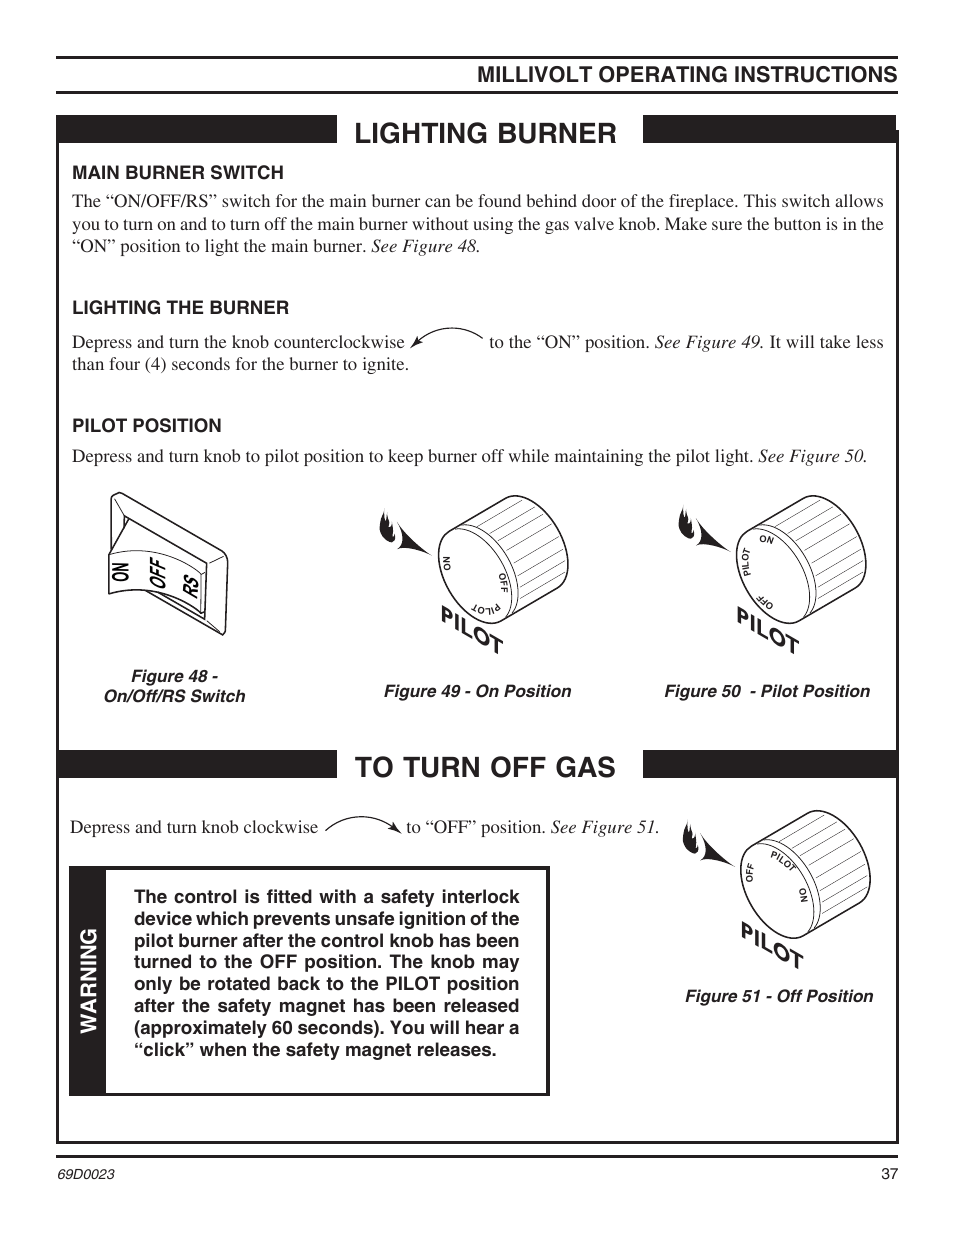 Gas Fireplace Pilot Light Out Lighting Burner Pilo T Millivolt Operating Instructions